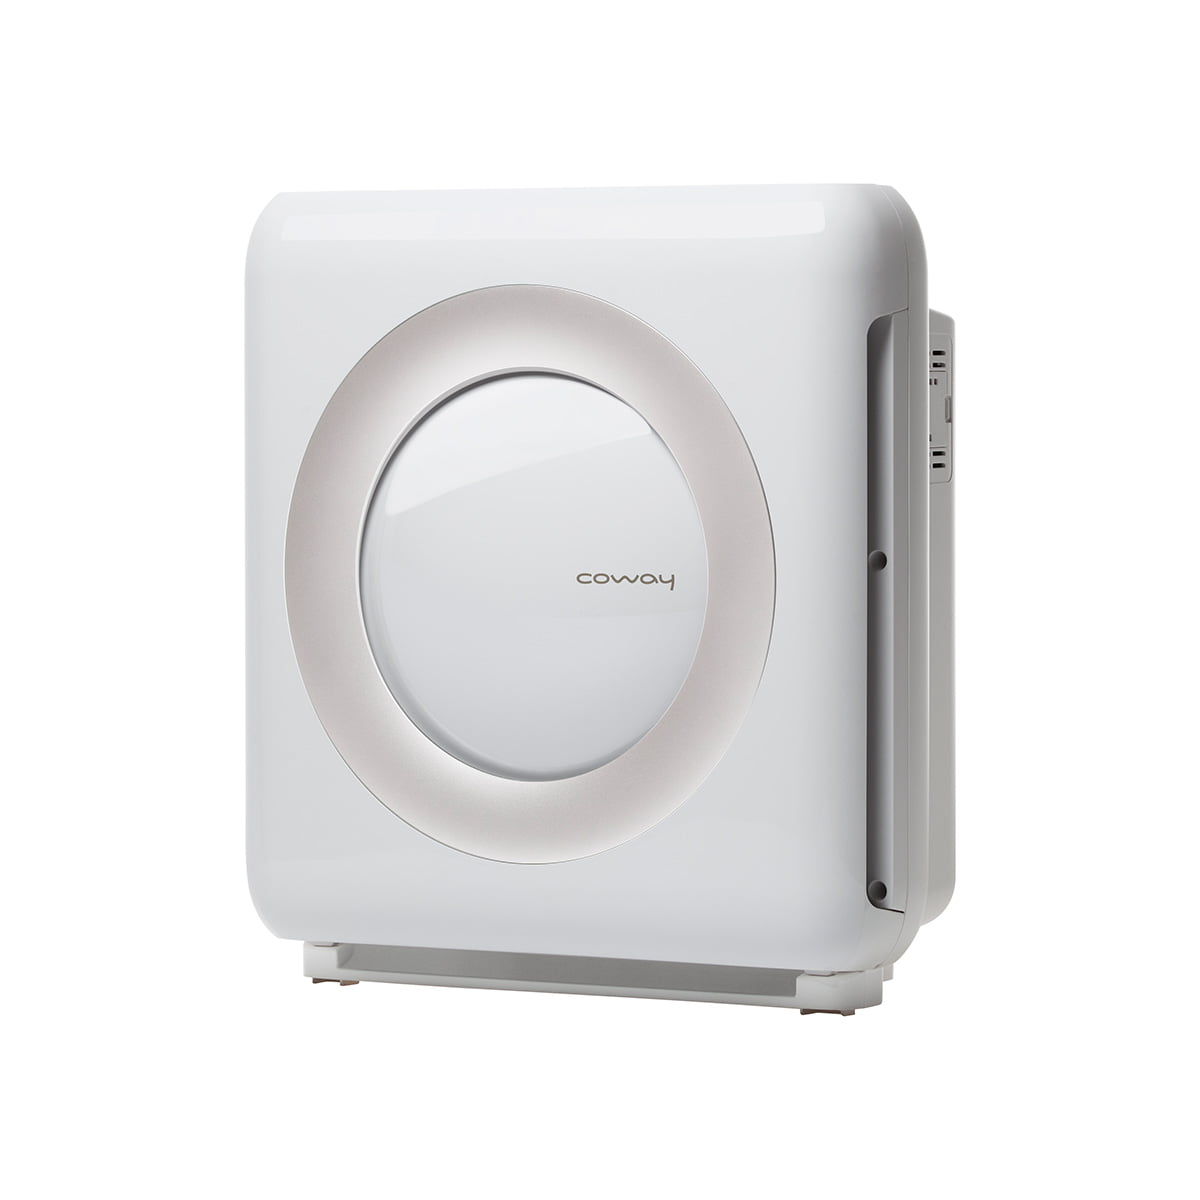 Coway Airmega AP-1512HH Mighty Air Purifier with True HEPA and Smart Mode  in White - Walmart.com - Walmart.com